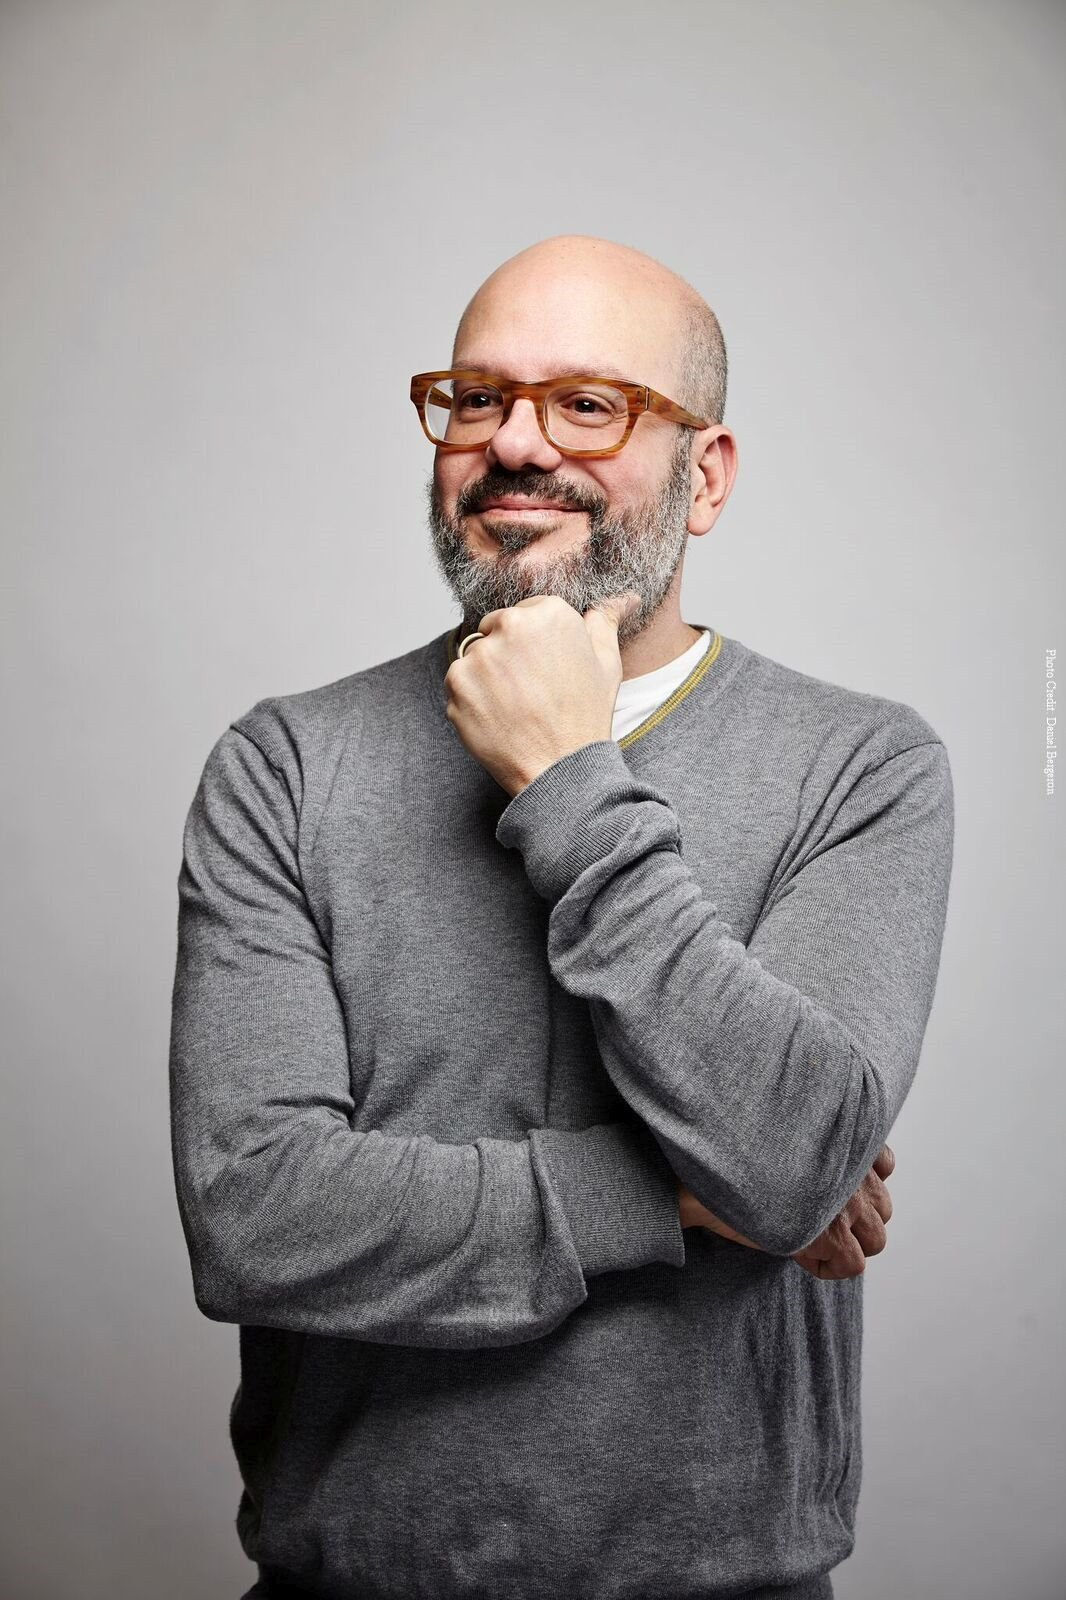 Comedian David Cross muses about his first tour of the decade